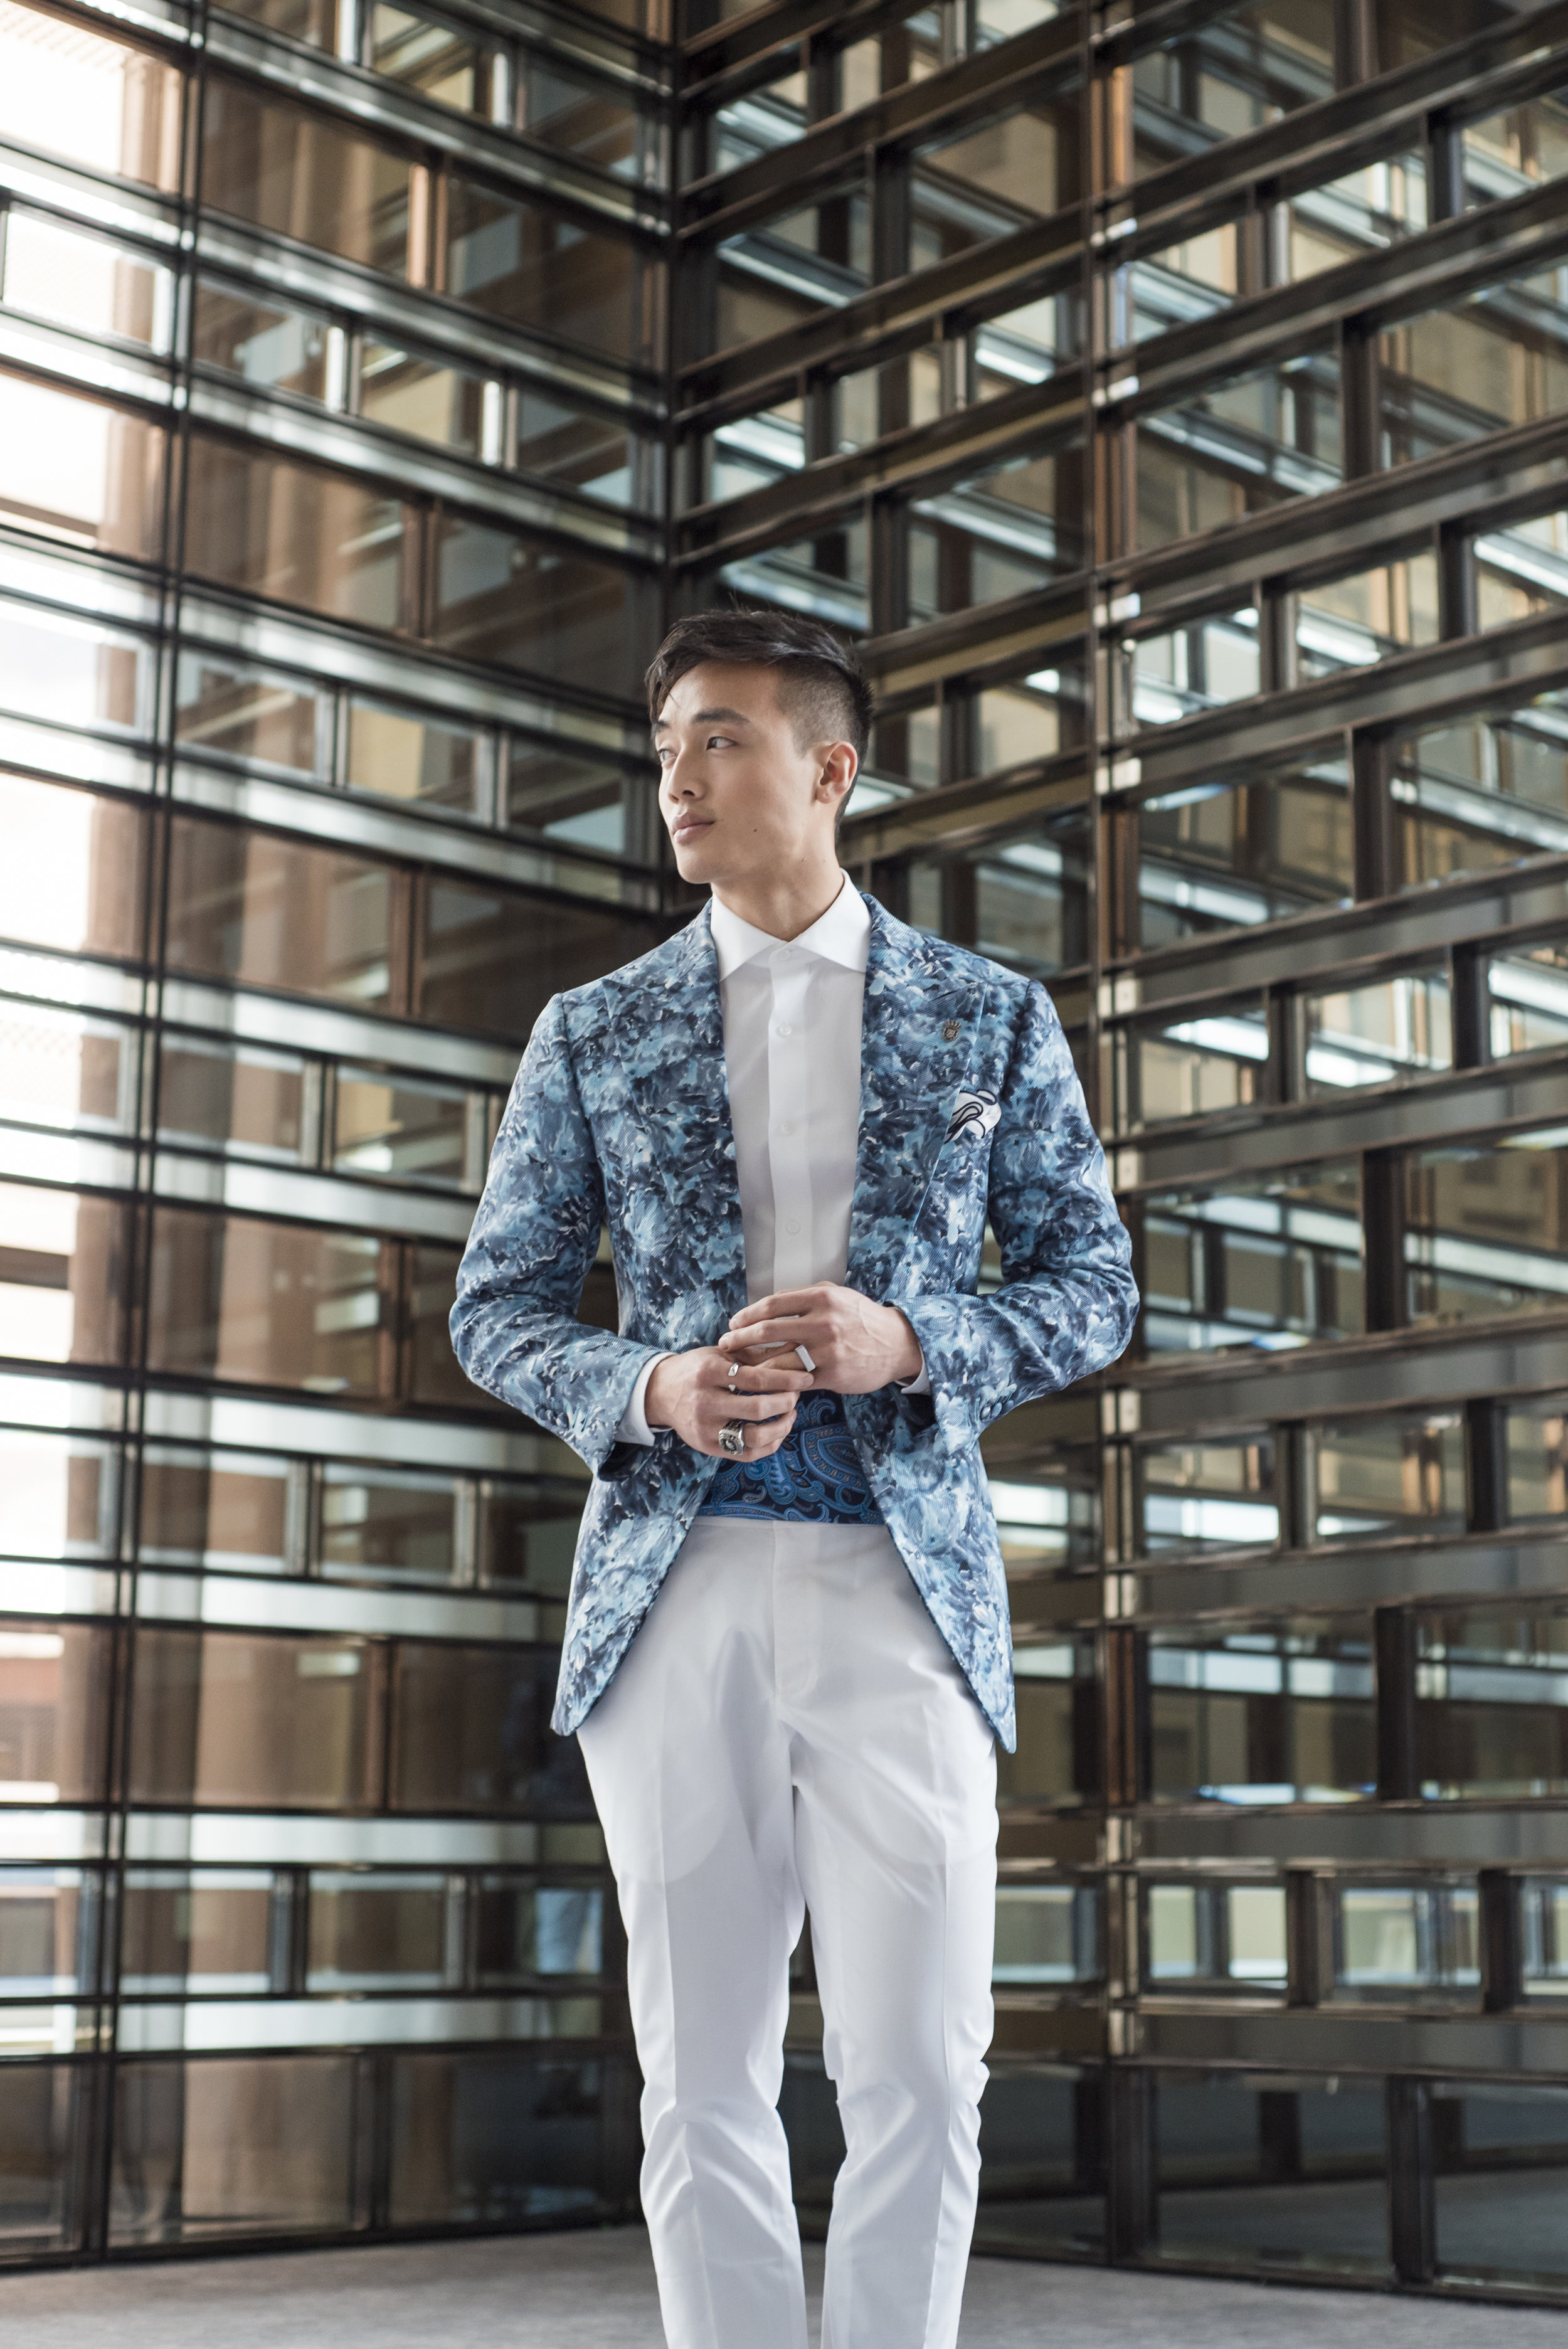 August In Bloom - Groom in blue and white patterned suit - The Suited Groom (The Bridal Affair)